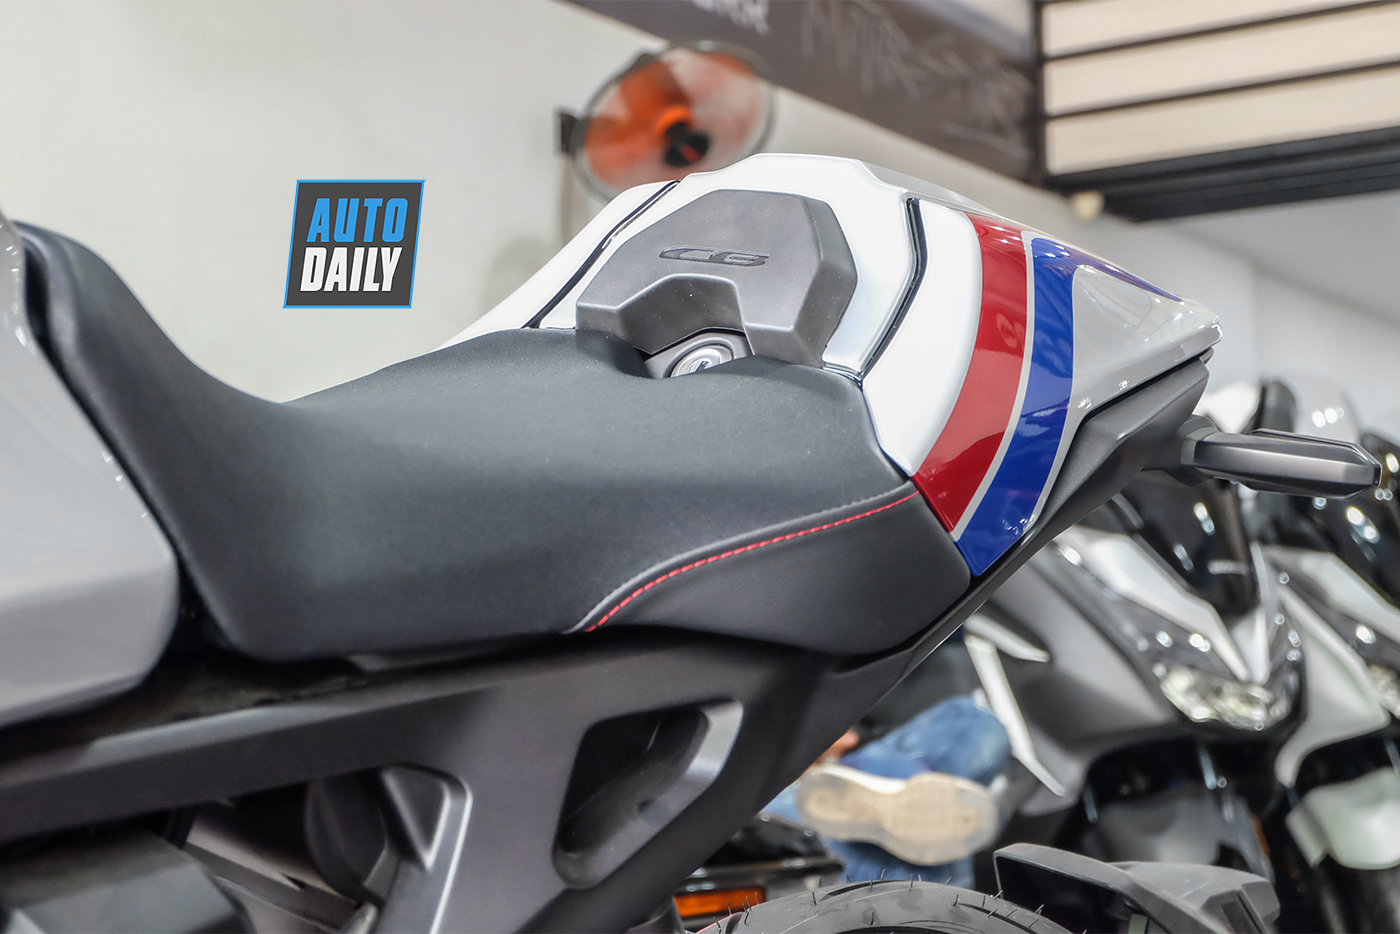 honda-cb1000r-plus-limited-edition-2019-3.jpg